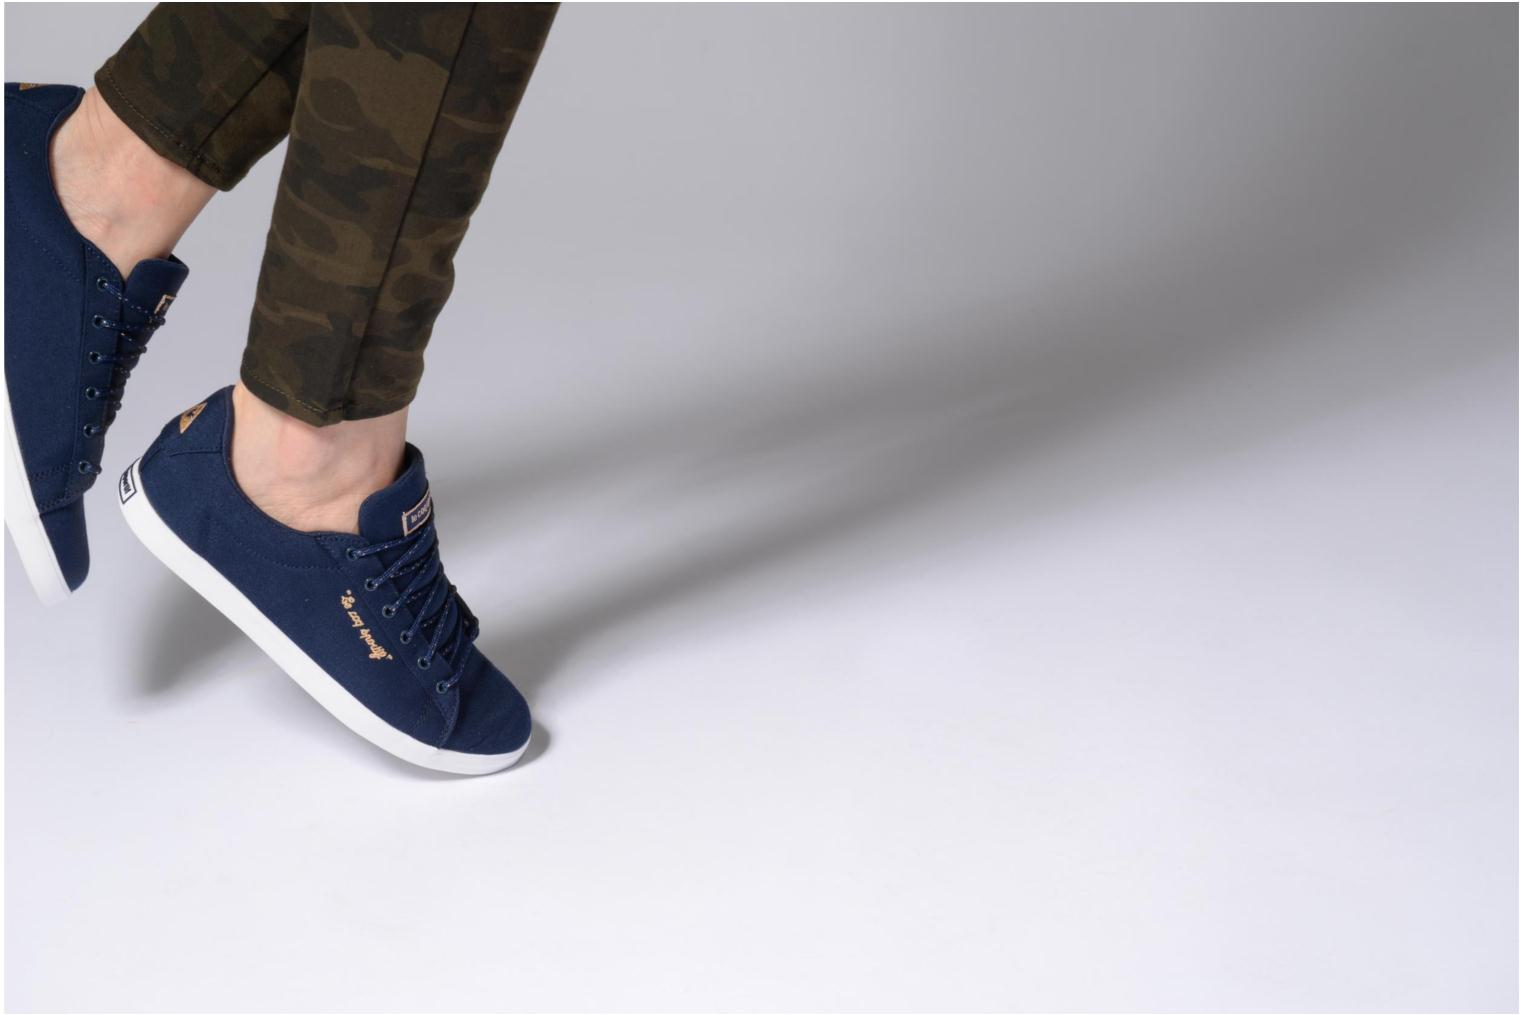 Dress Blue/Rose Gold Le Coq Sportif Aagate Lo Cvs/Metallic (Bleu)